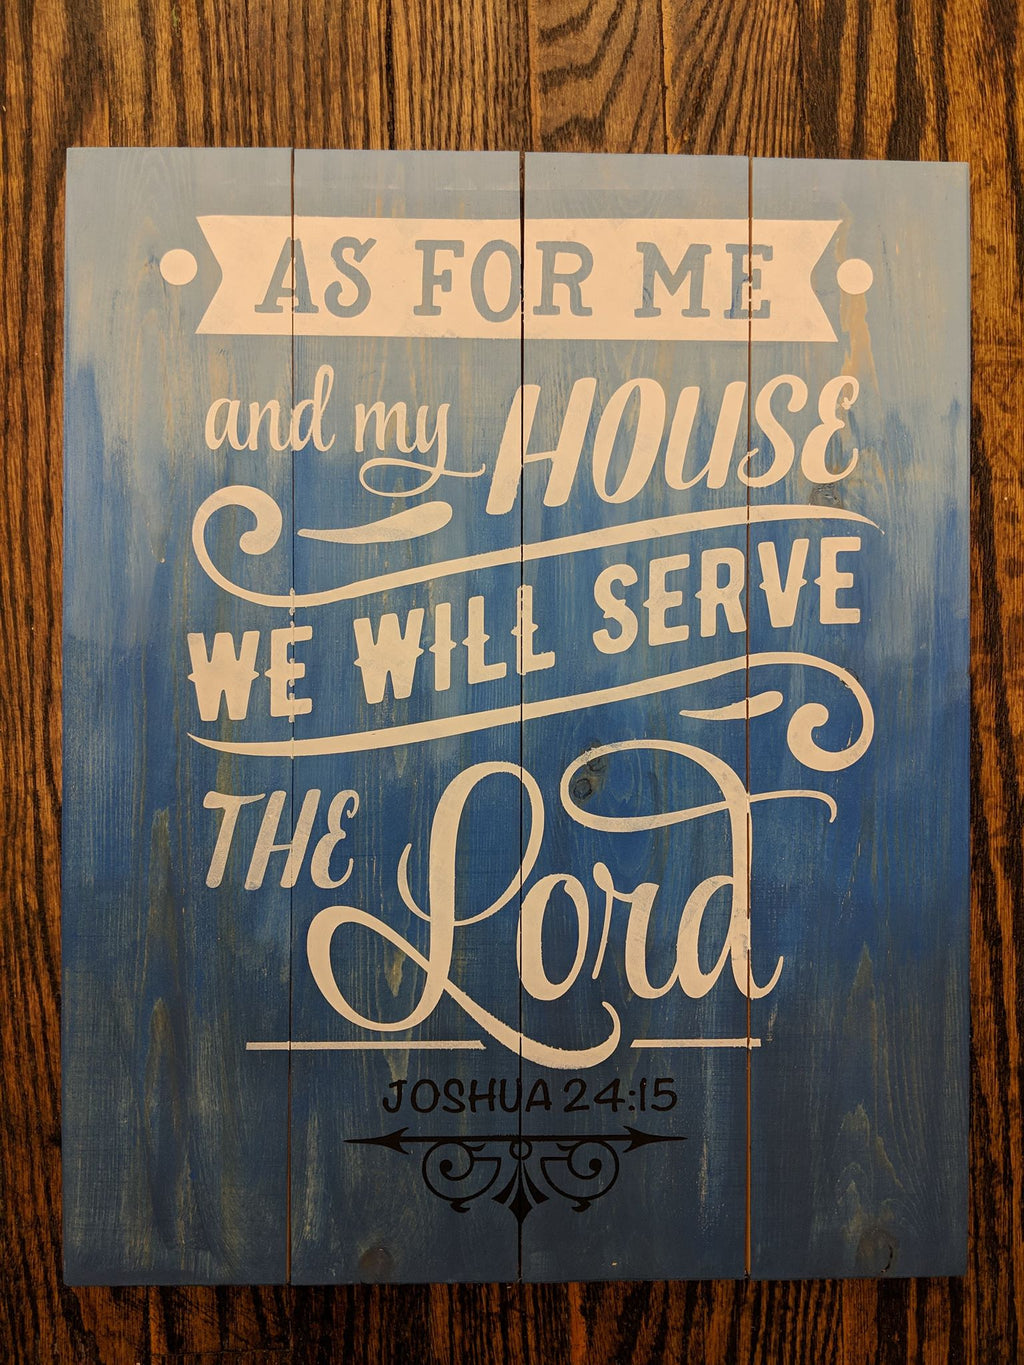 As for me and my house we serve the Lord-banner